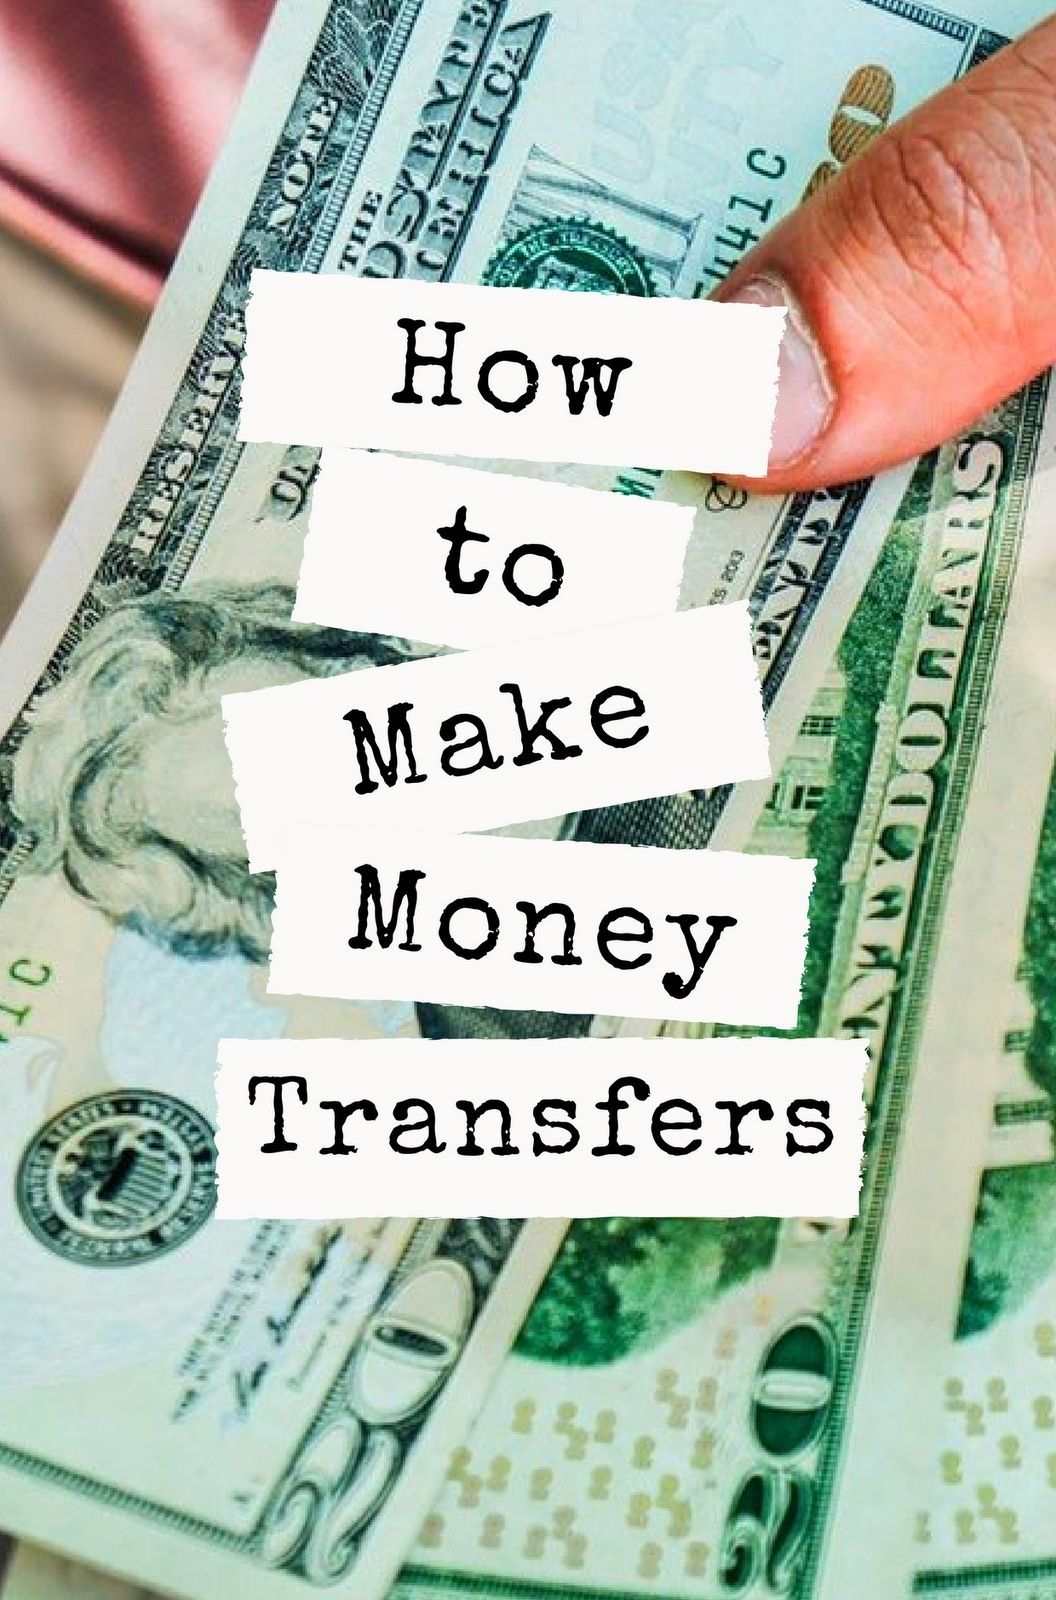 How Much Money Can I Transfer From Savings To Checking